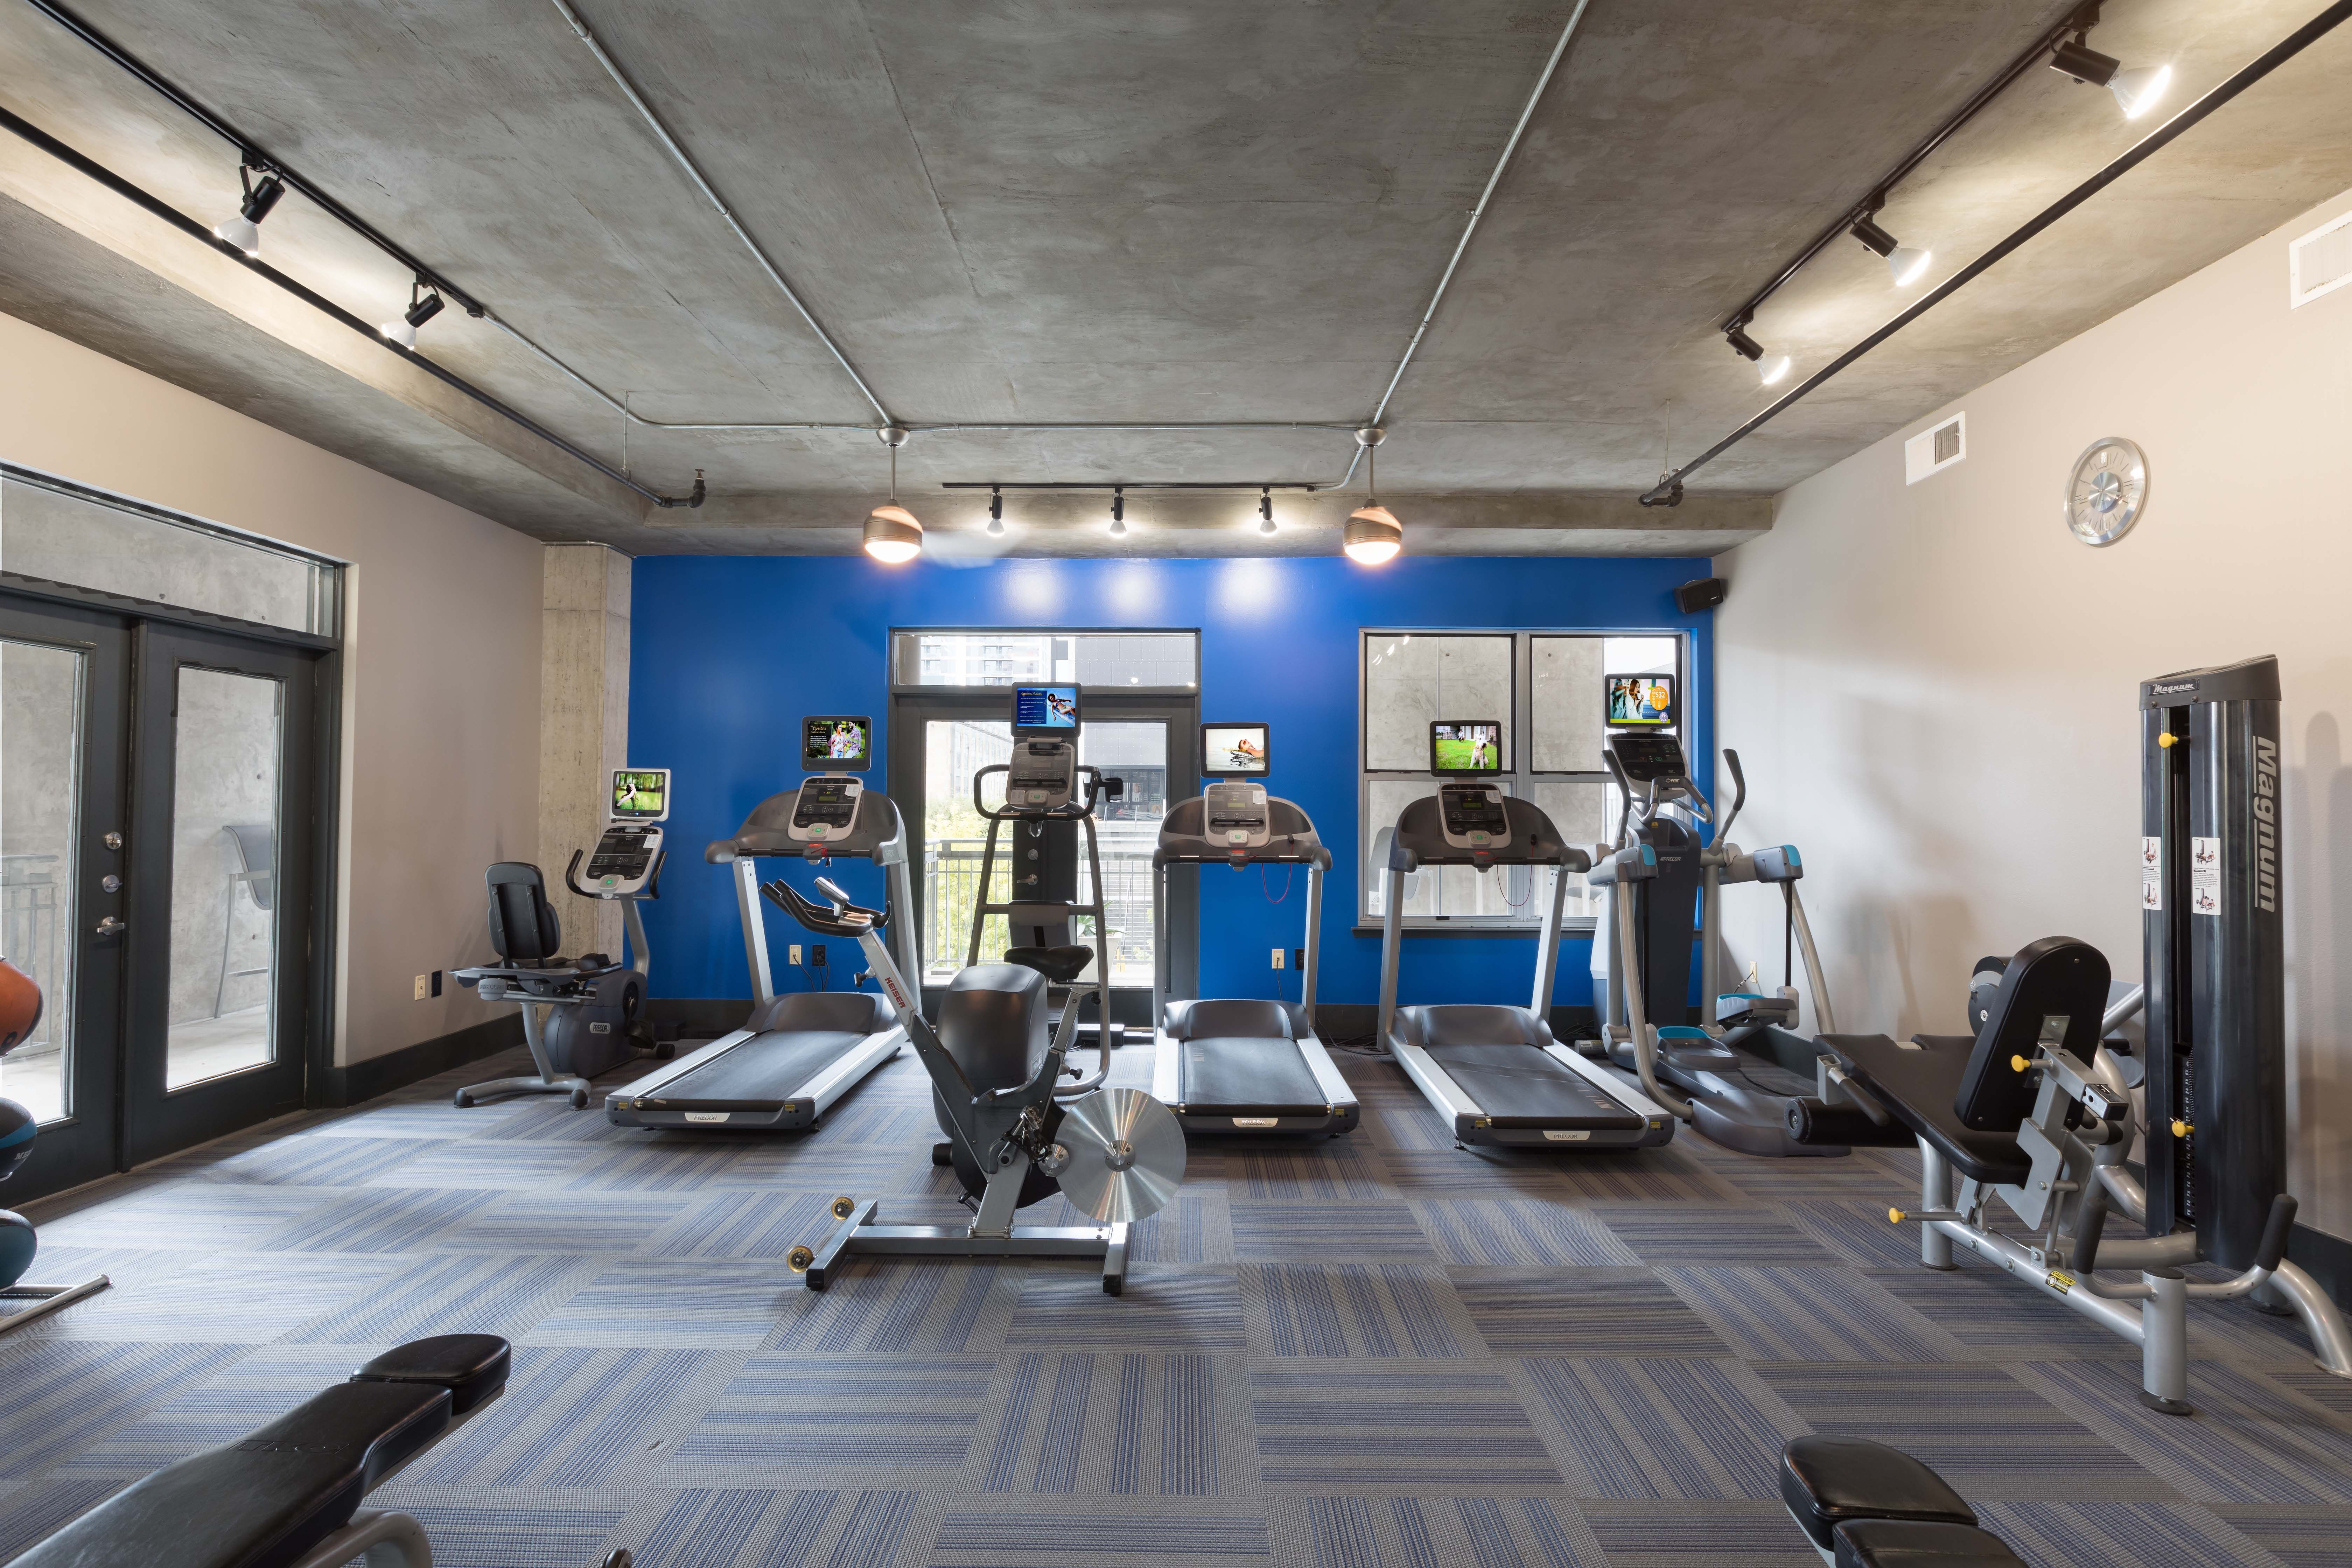 Cancel your gym membership! Our fitness center is